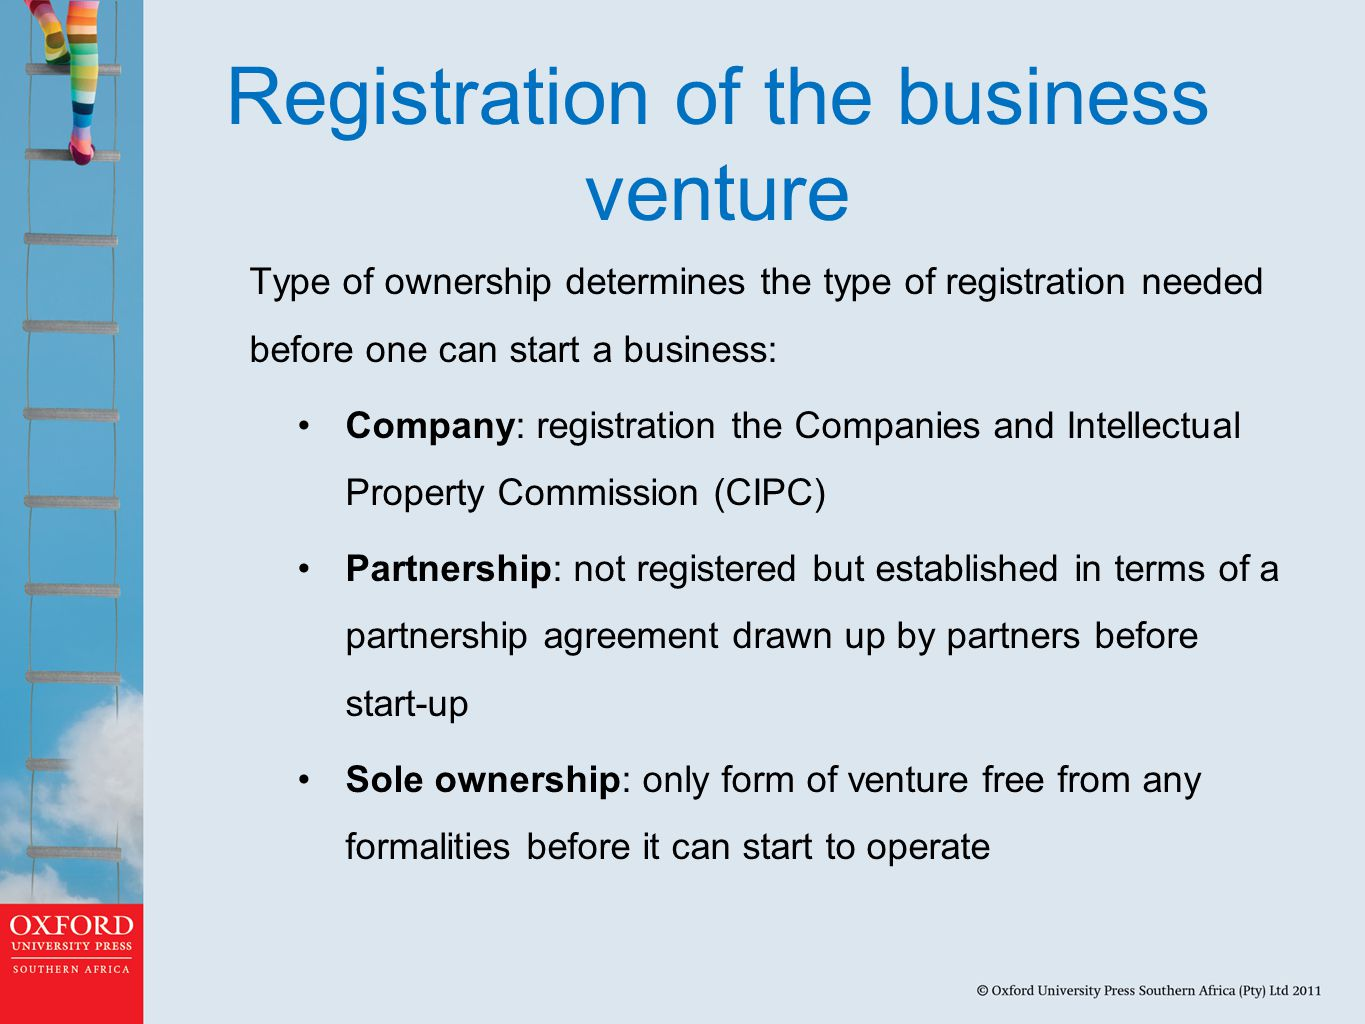 Registration of the business venture